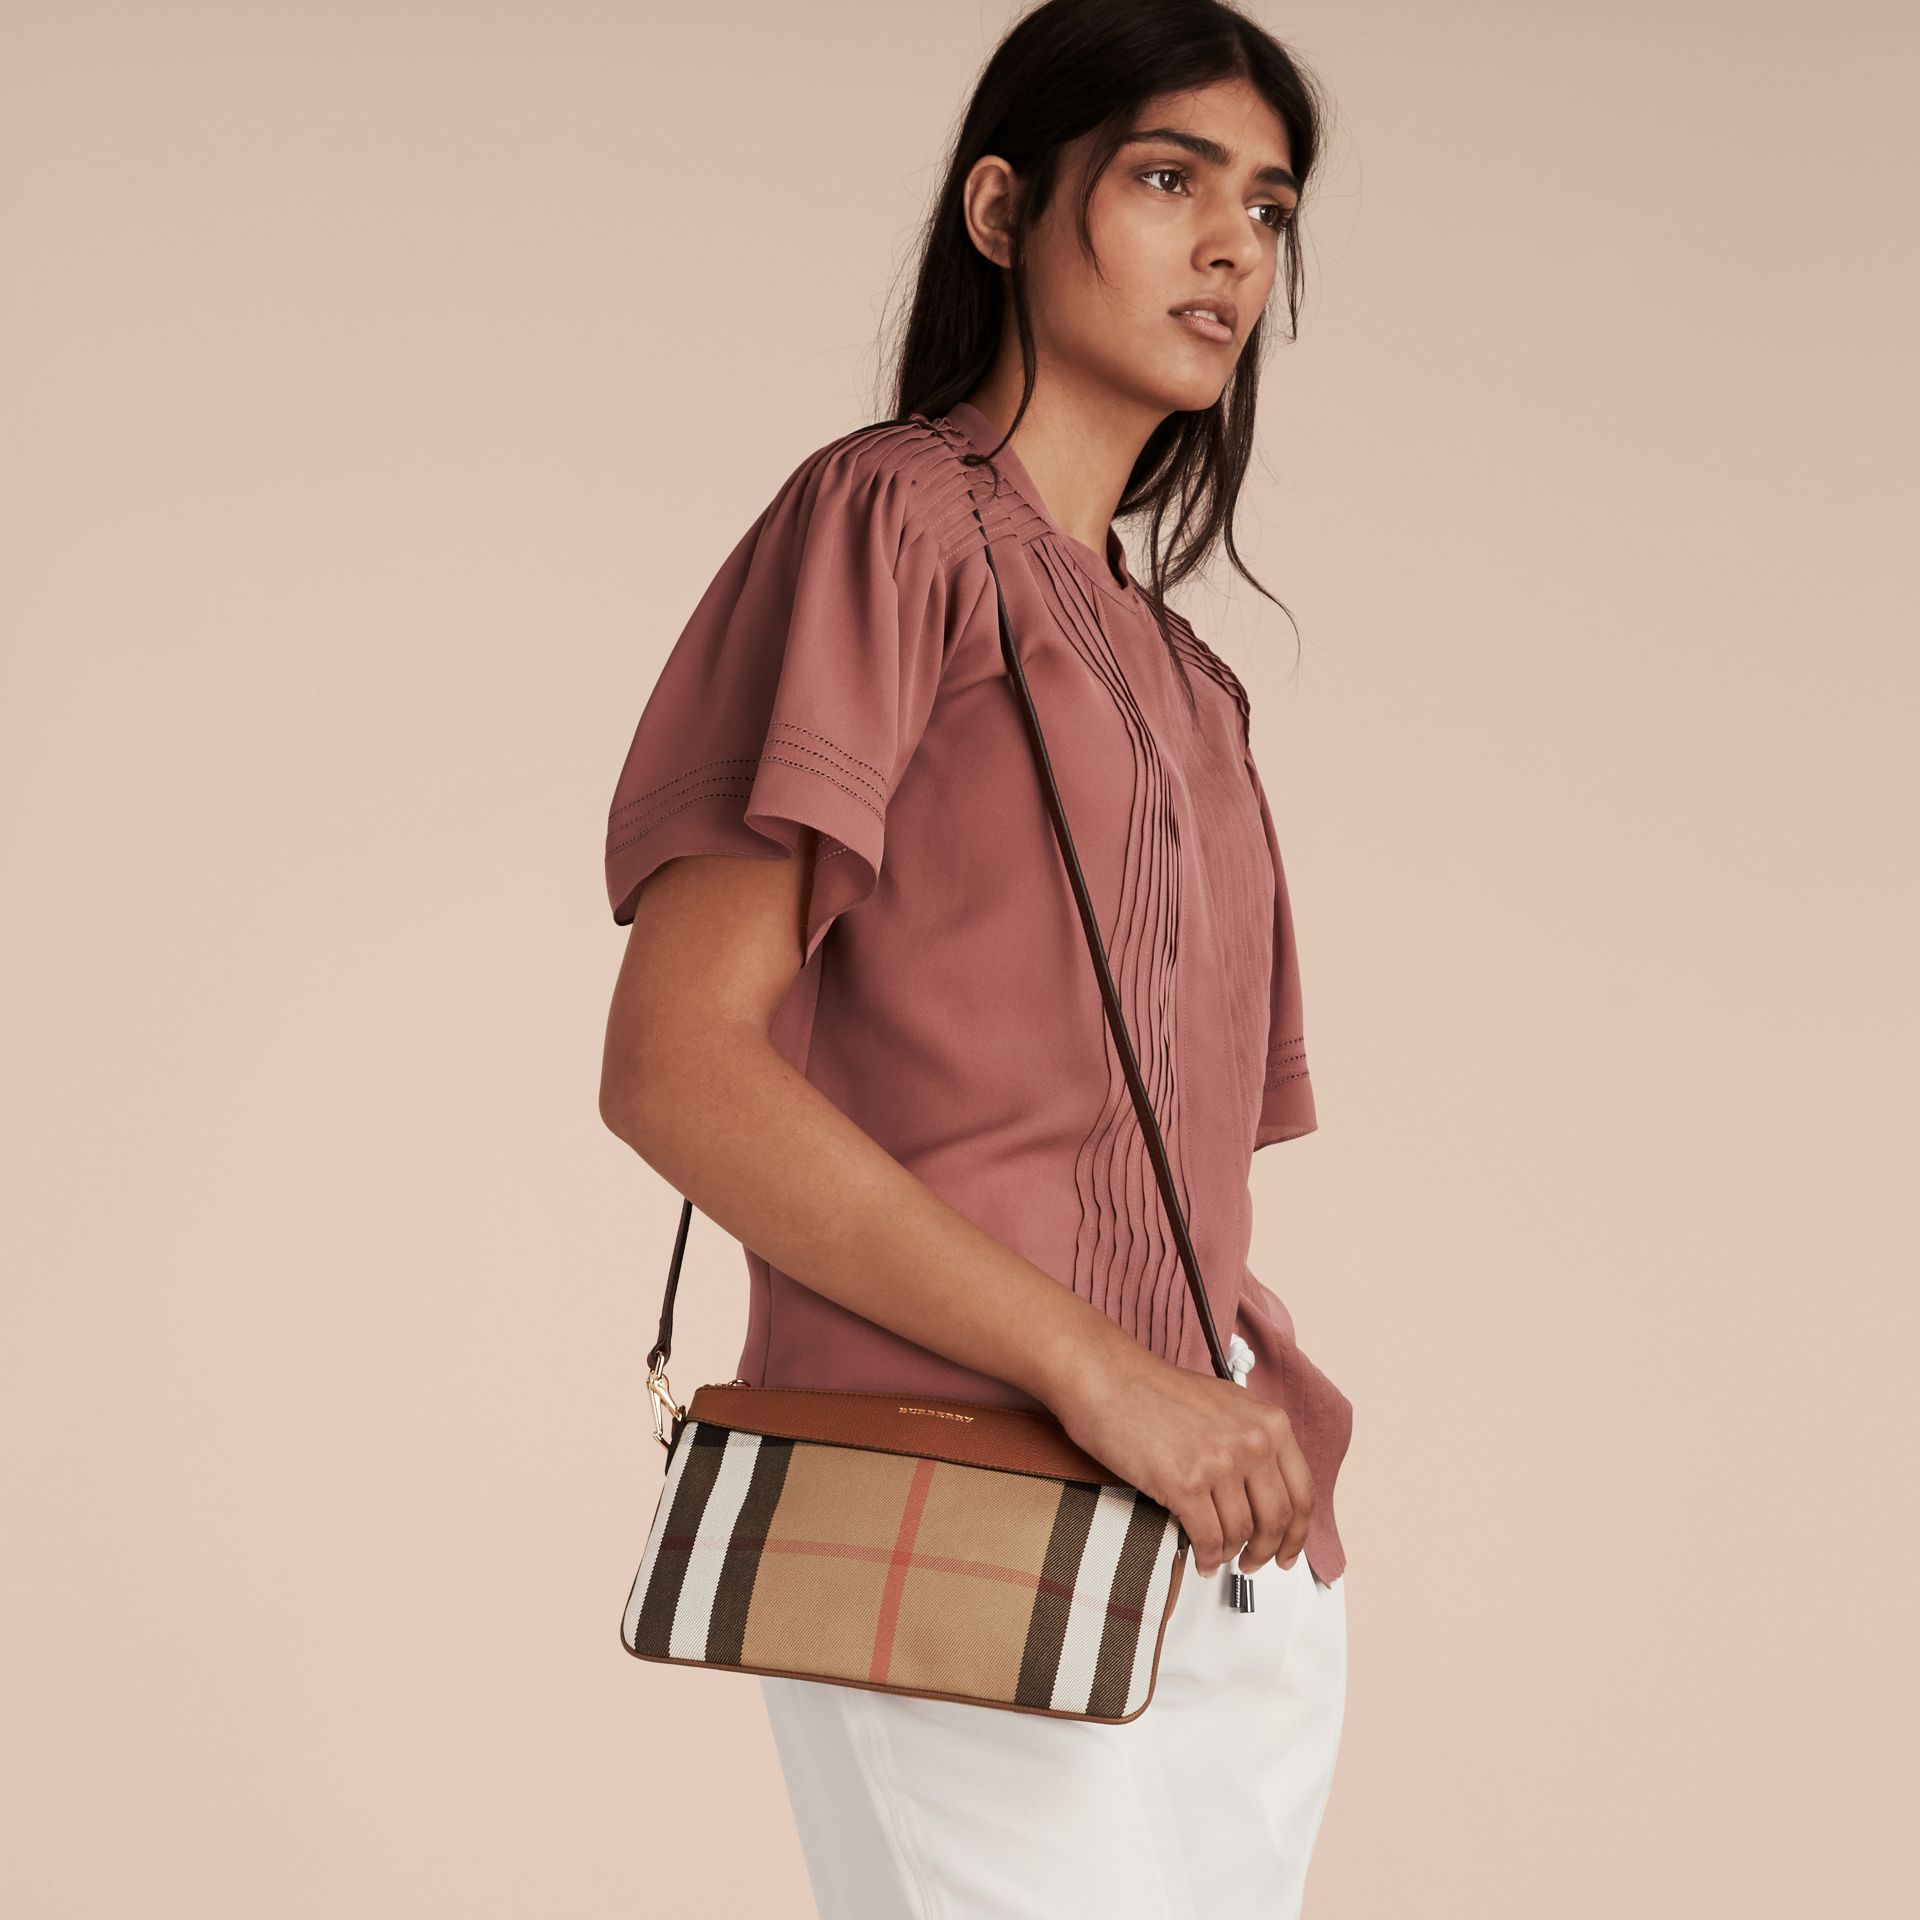 House Check and Leather Clutch Bag in Tan - Women | Burberry - gallery image 3